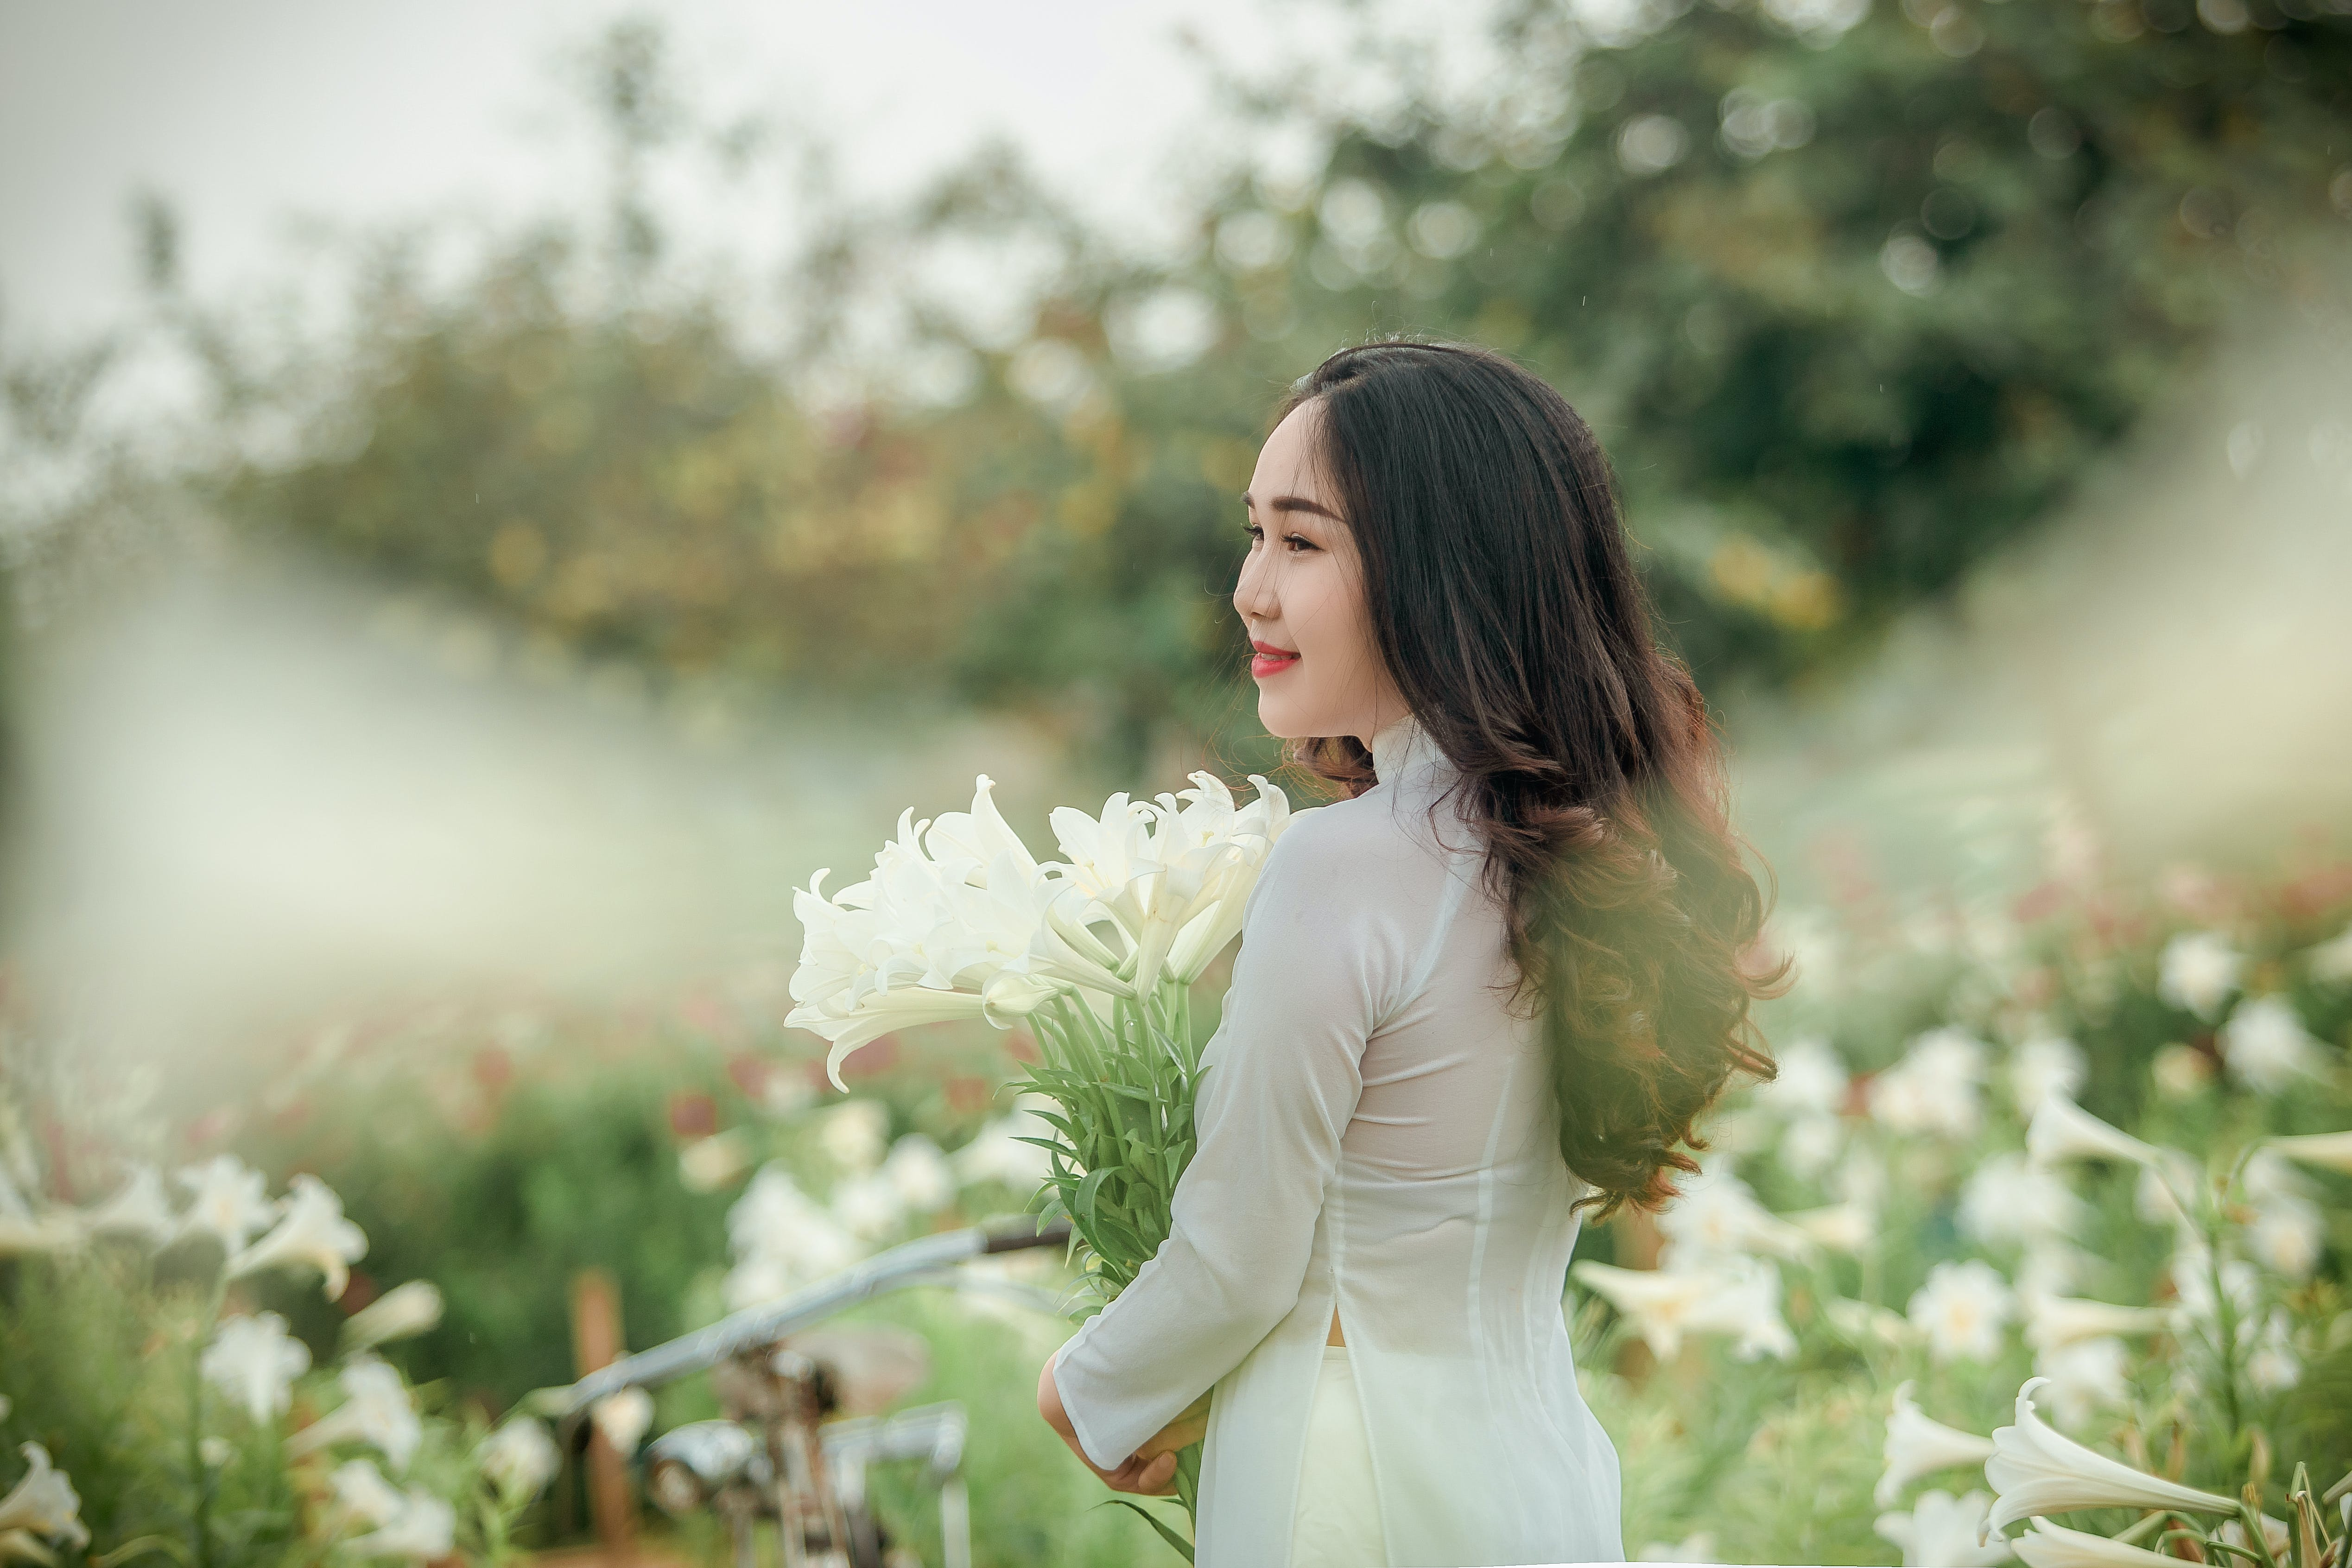 Woman in White Long-sleeved Dress Holding Flowers on Selective Focus Photography